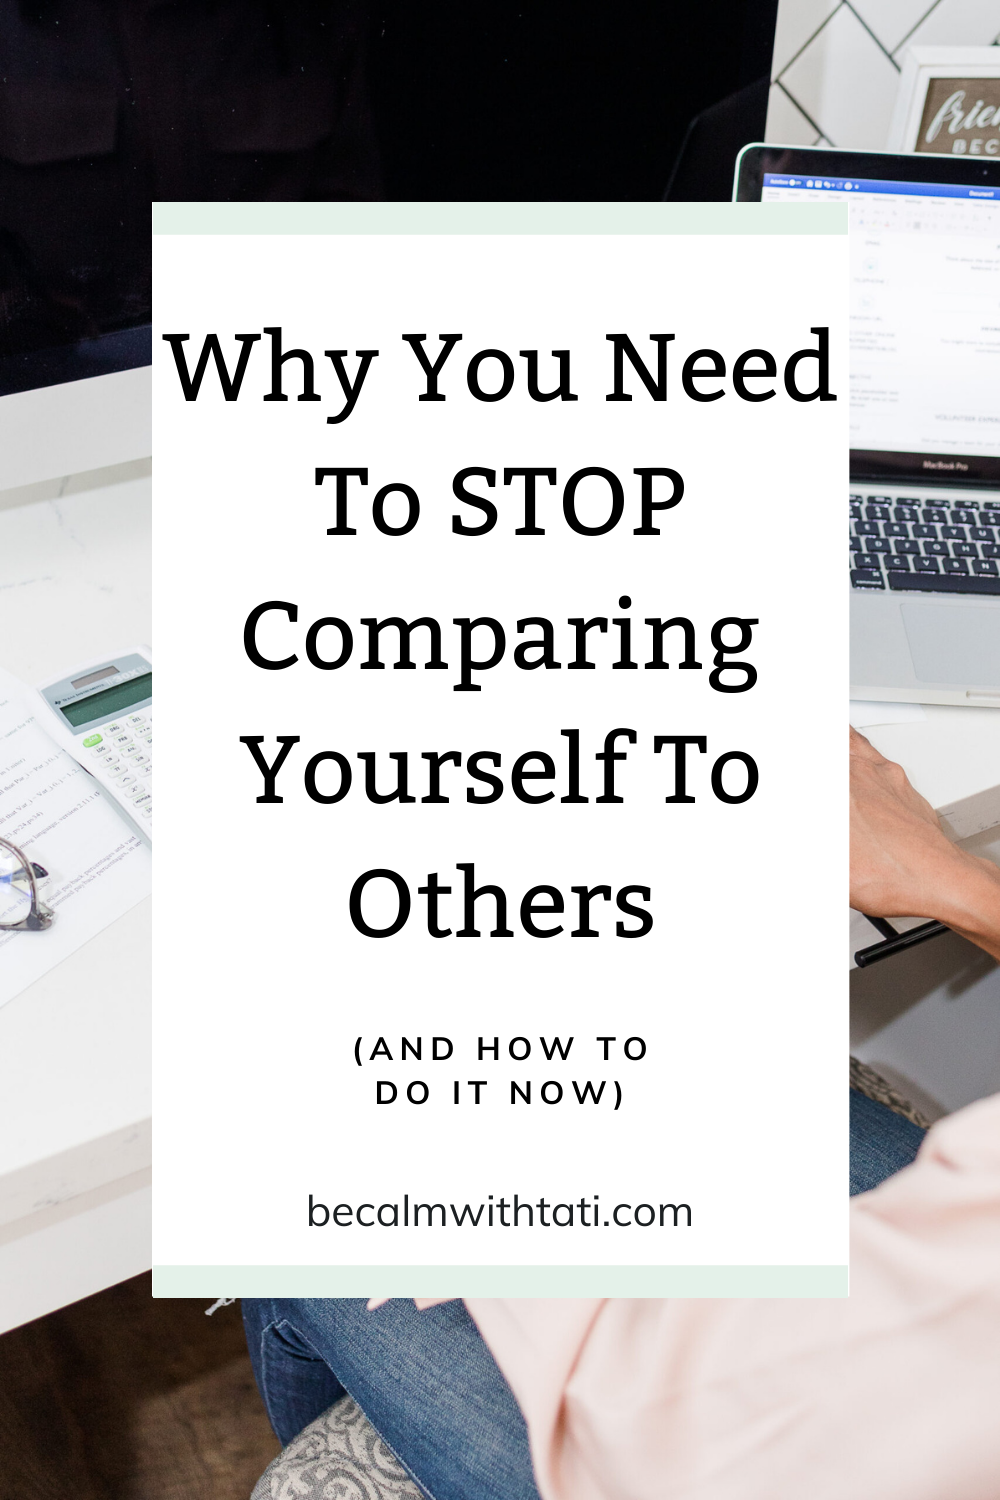 Why You Need To Stop Comparing Yourself To Others (And How To Do It NOW)